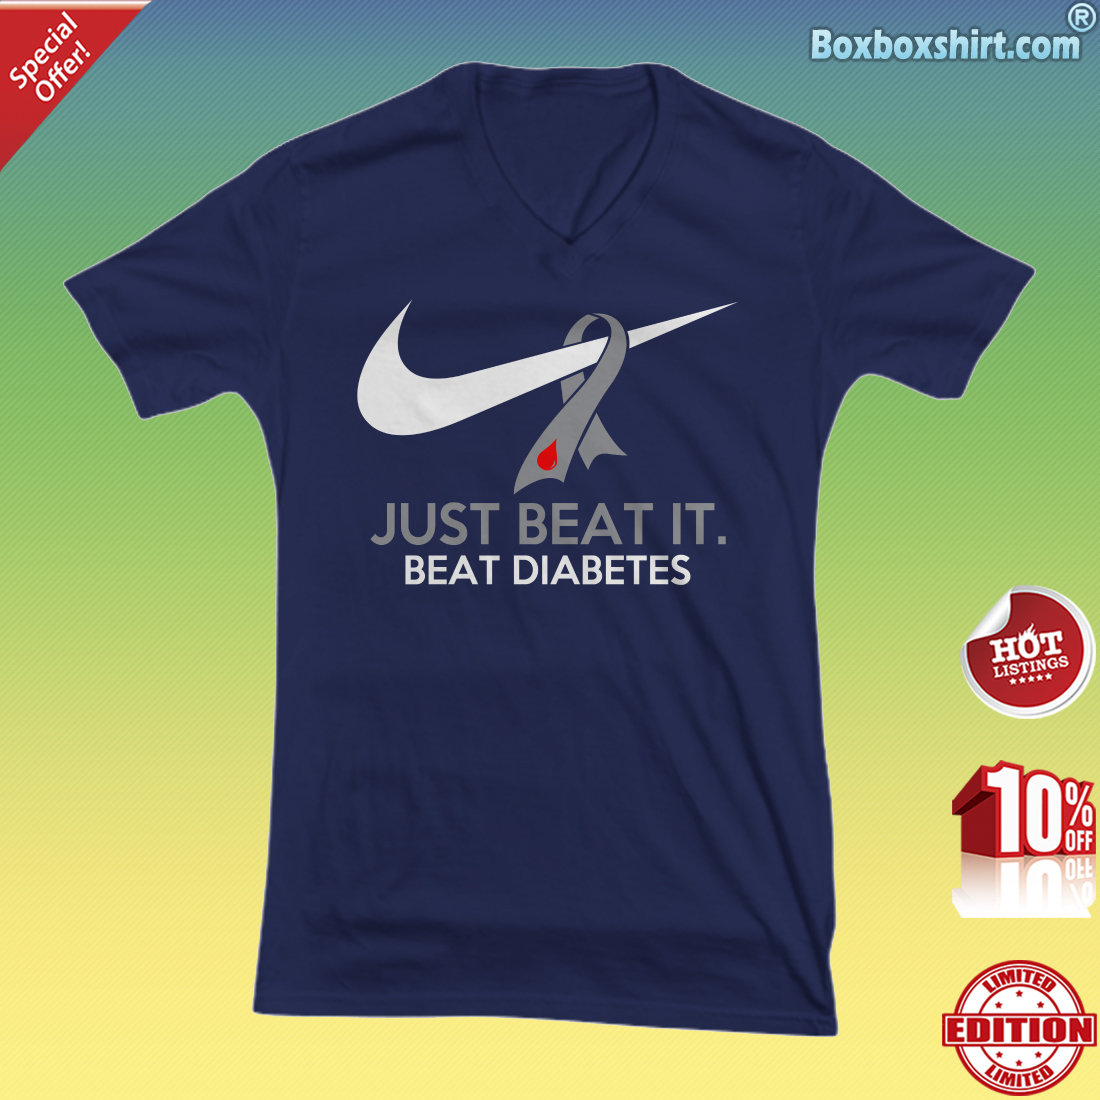 Just beat it beat diabetes V-neck Tee